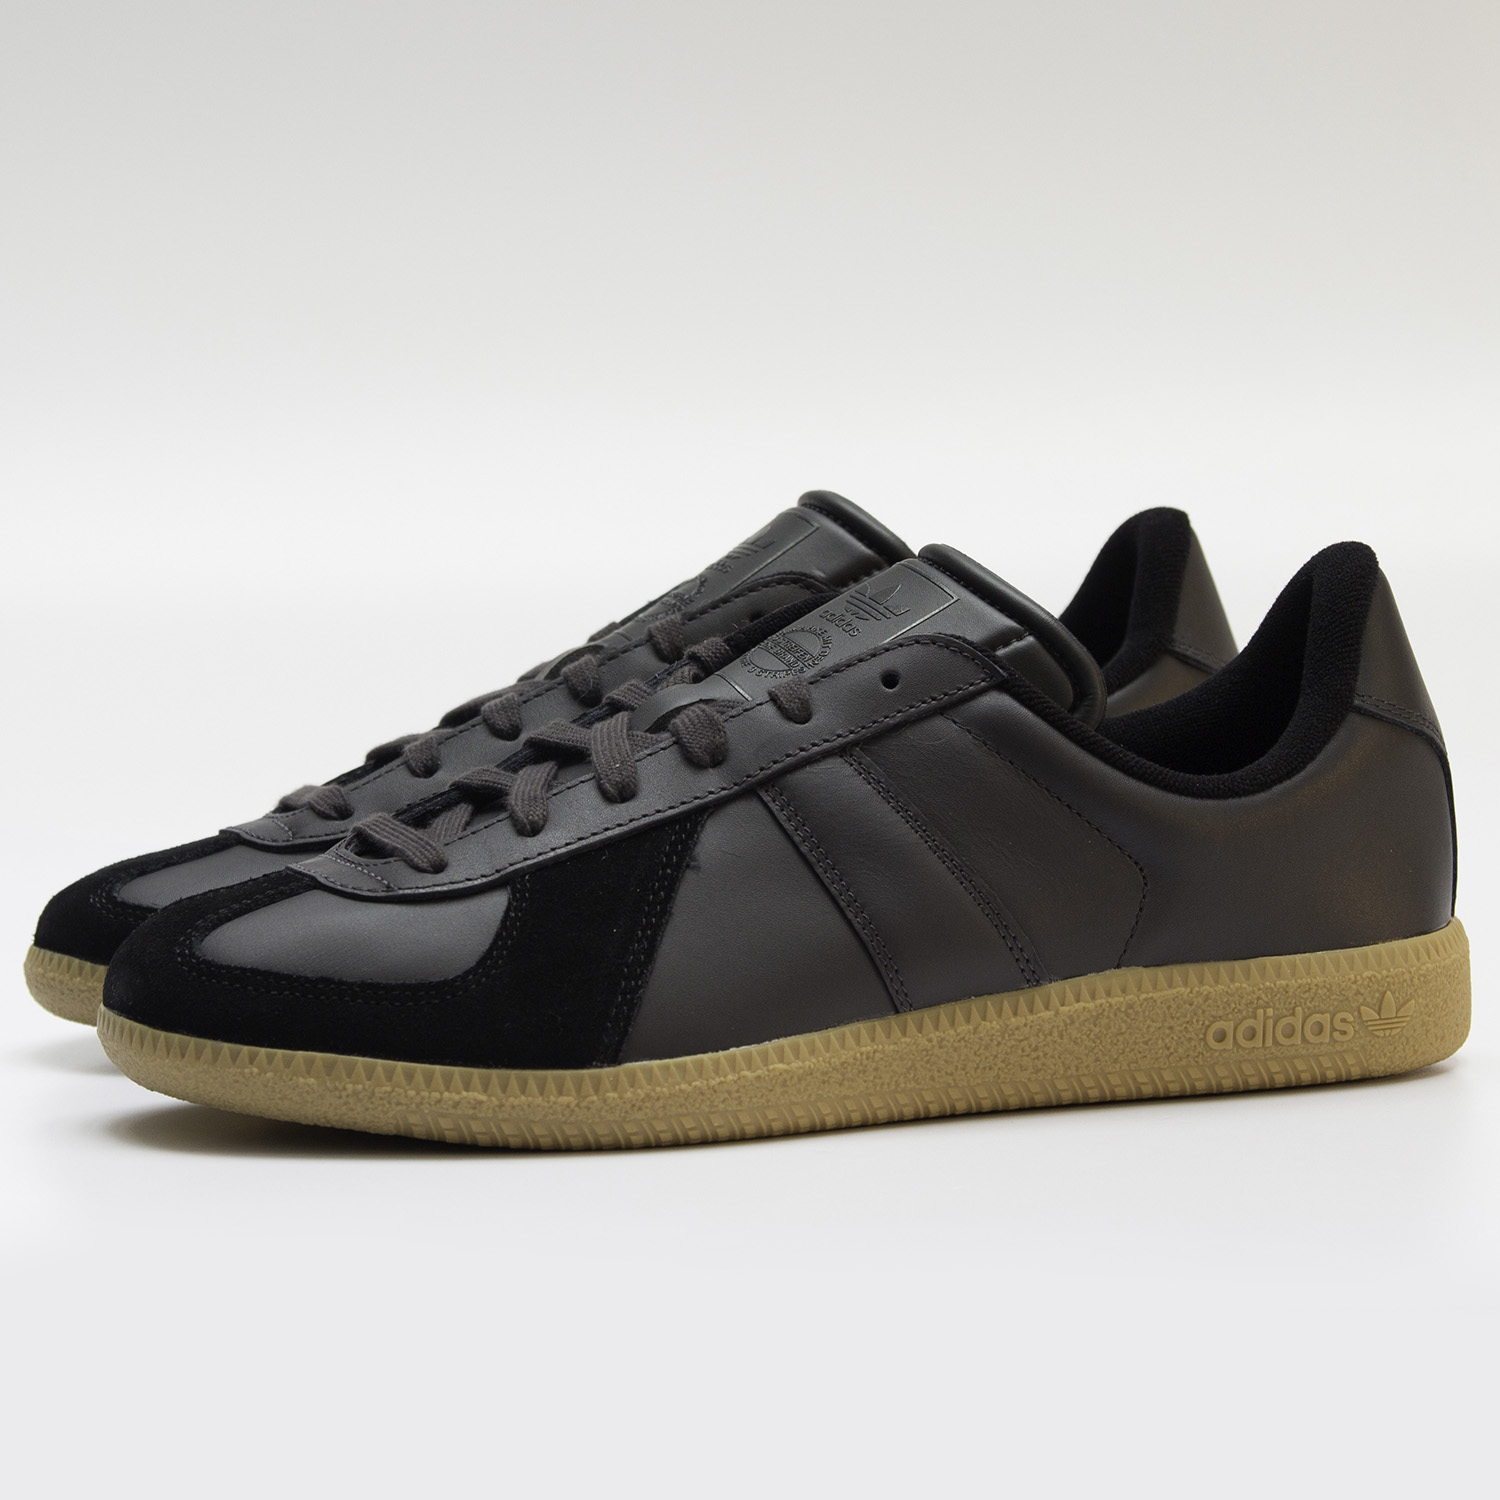 timeless design aef3d c1c9e The adidas BW army is a classic replica of the Indoor German Army Trainer  and recreates the classic detailing in two fresh colourways.